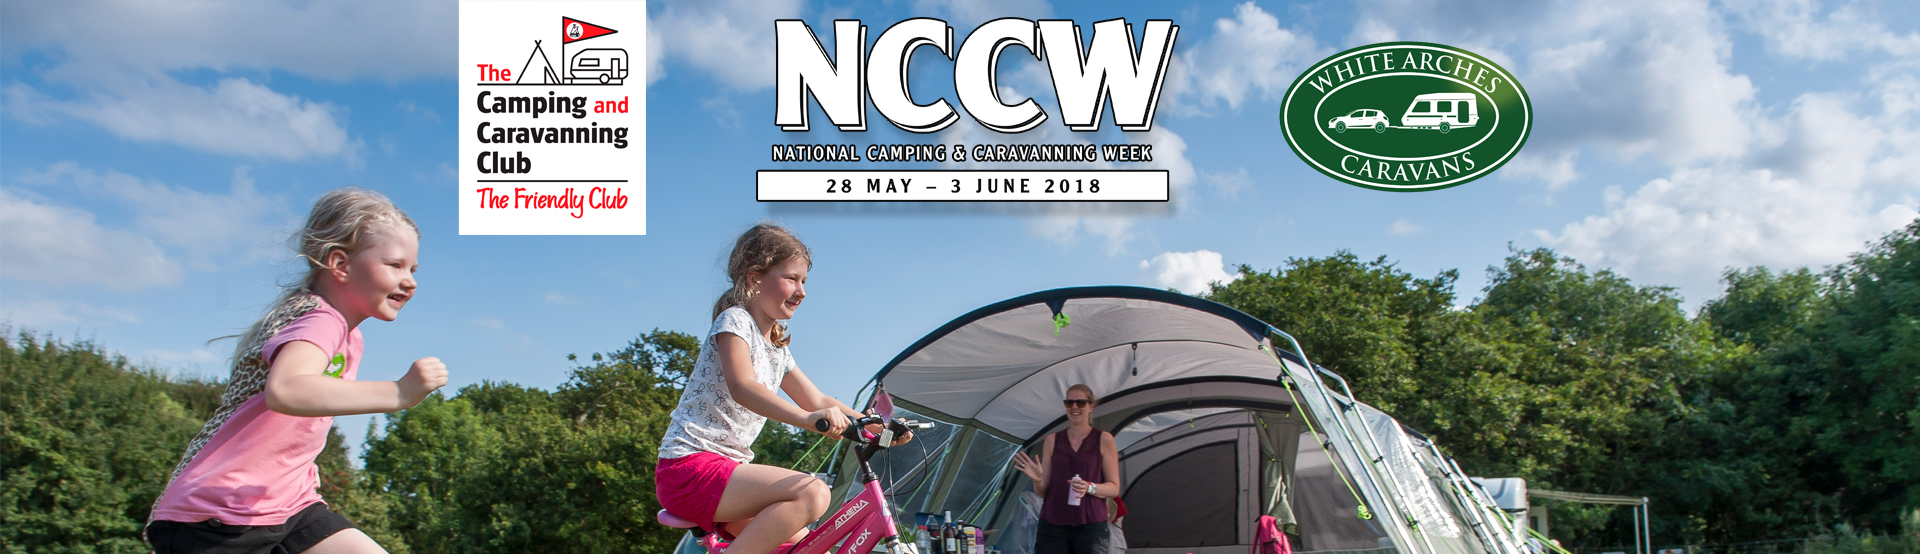 NEW WEBSITE BANNER NCCW 2019